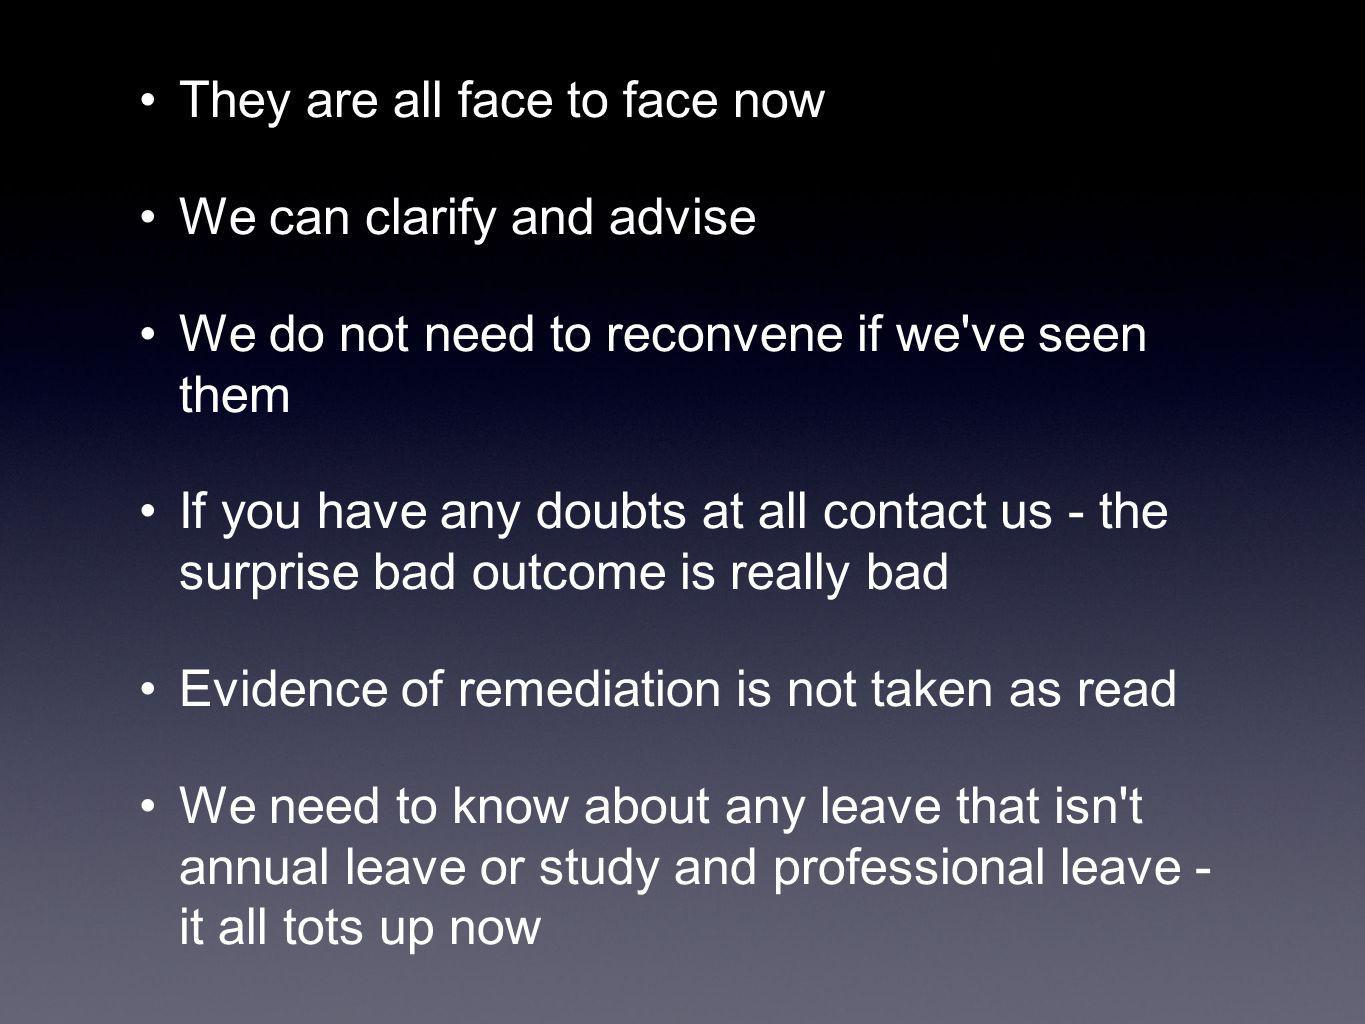 They are all face to face now We can clarify and advise We do not need to reconvene if we ve seen them If you have any doubts at all contact us - the surprise bad outcome is really bad Evidence of remediation is not taken as read We need to know about any leave that isn t annual leave or study and professional leave - it all tots up now